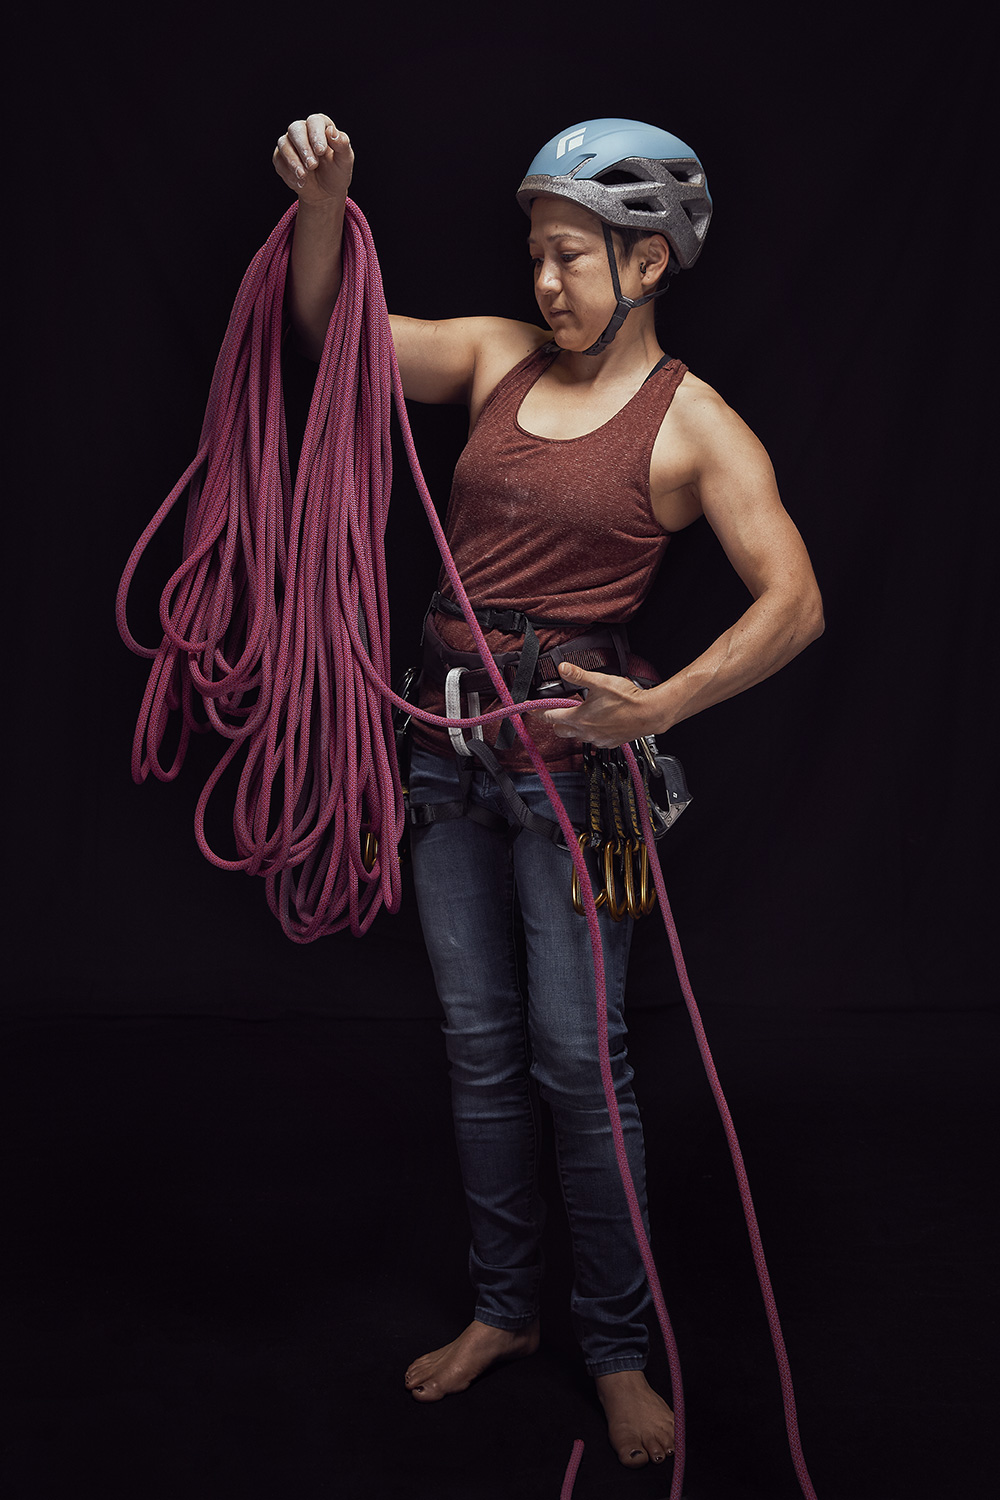 Porrtrait of woman mountain climber with her gear in studio